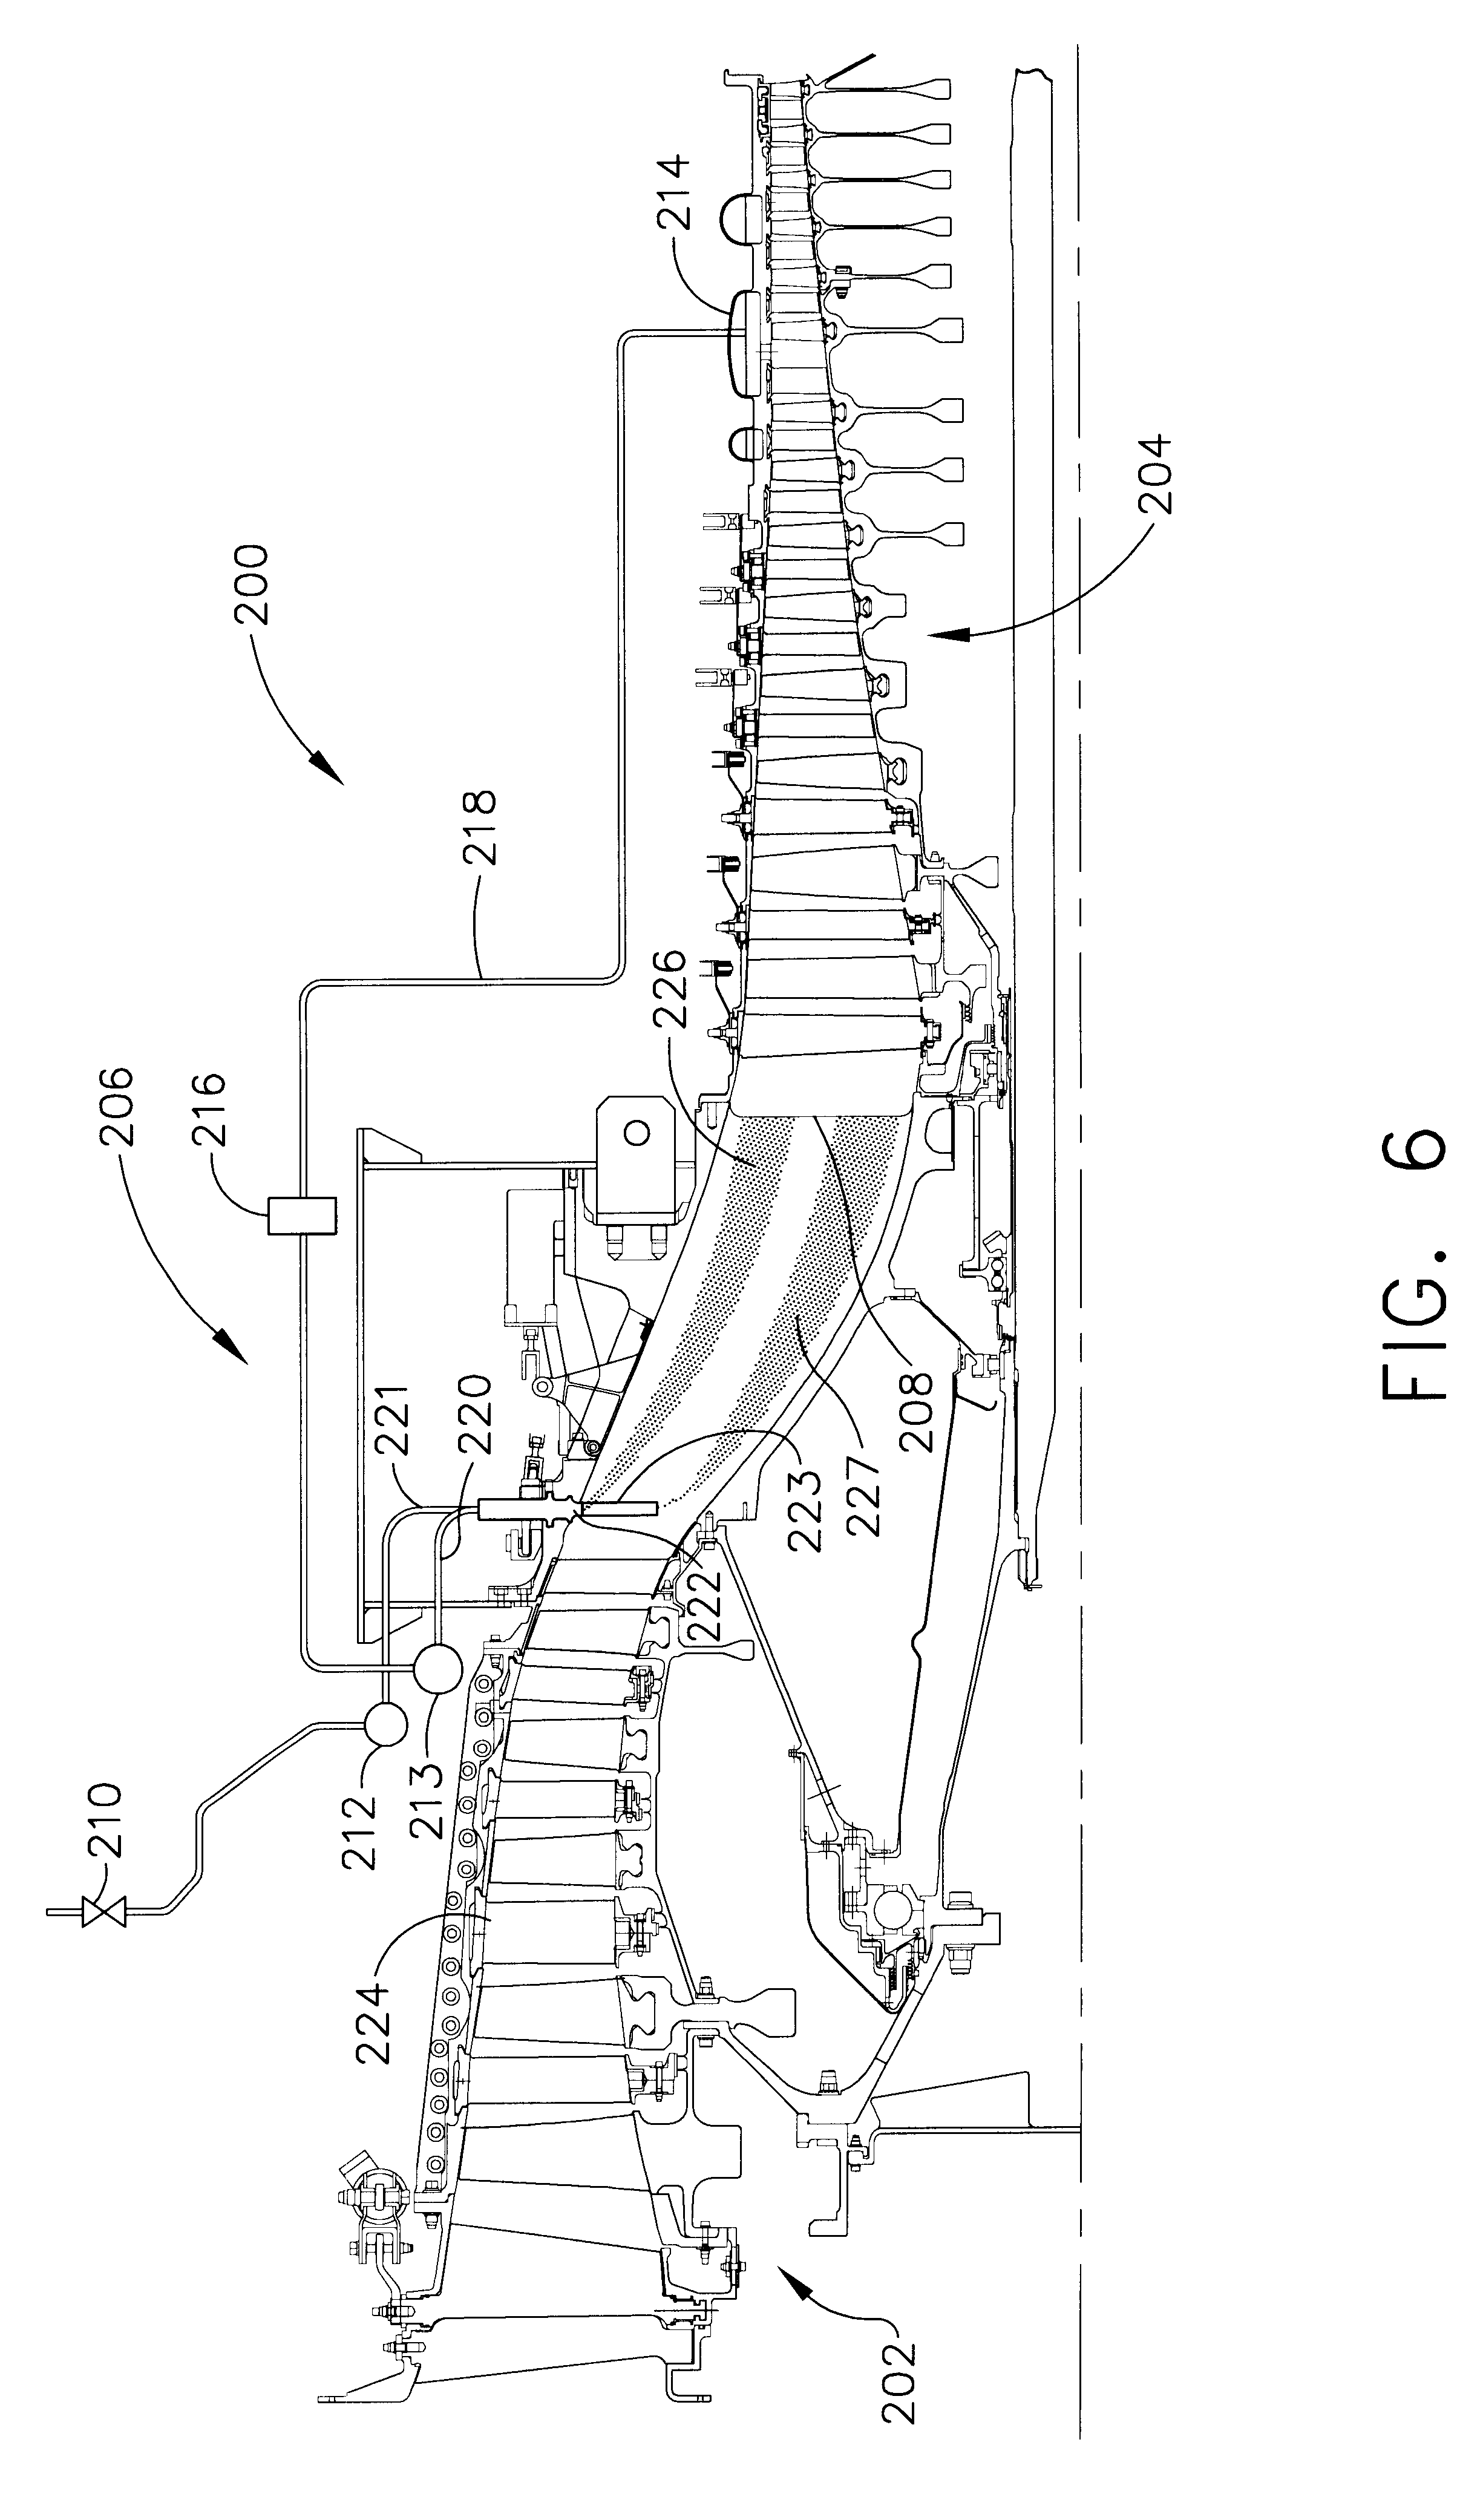 Patent US Control systems and methods for water injection